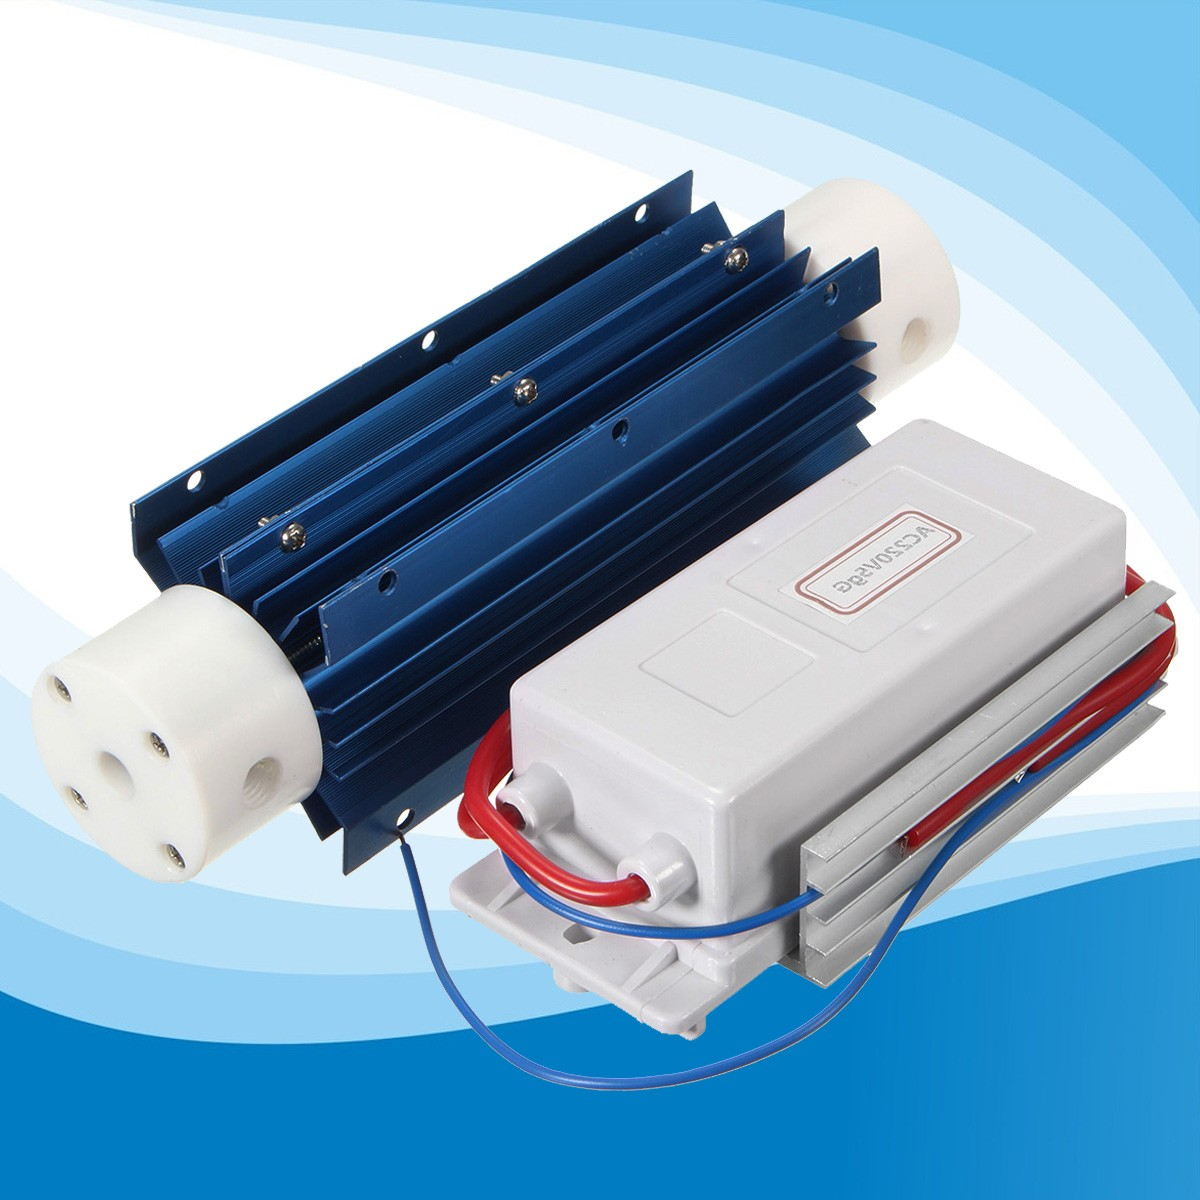 New 60W 220V 5G/H Water Disinfection Treatment Suite Ozone Generator Quartz Tube Air Ozone Air Purifier